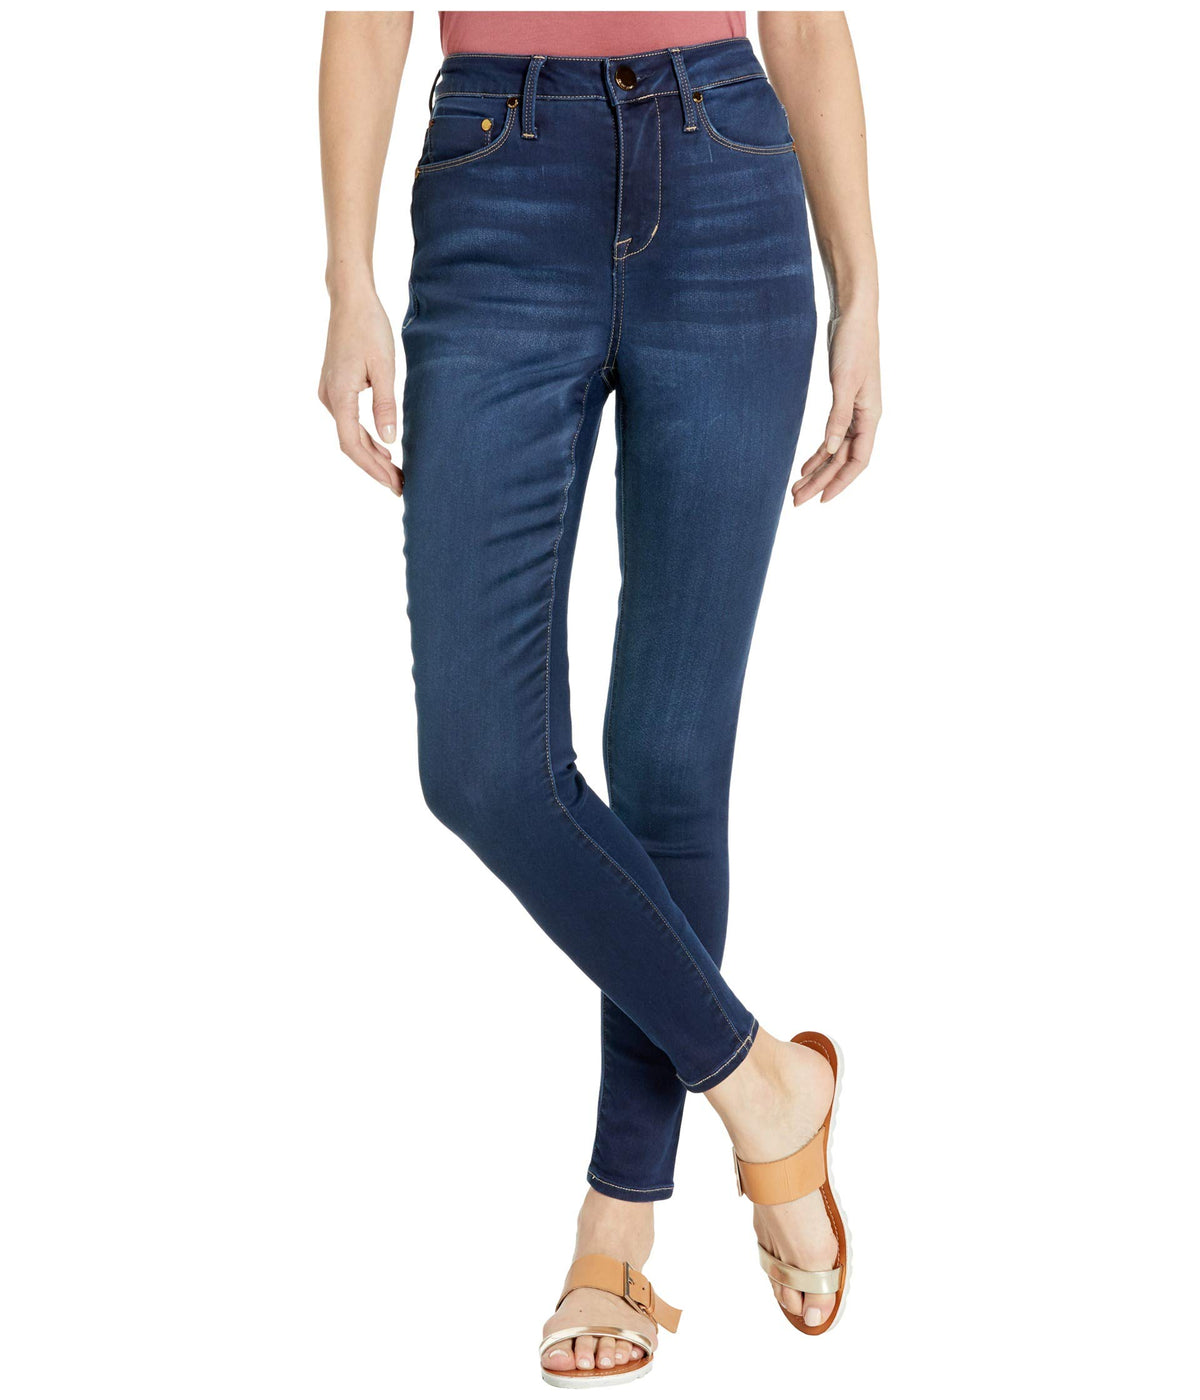 Skinfit High-Rise Jegging Jeans in Jarell